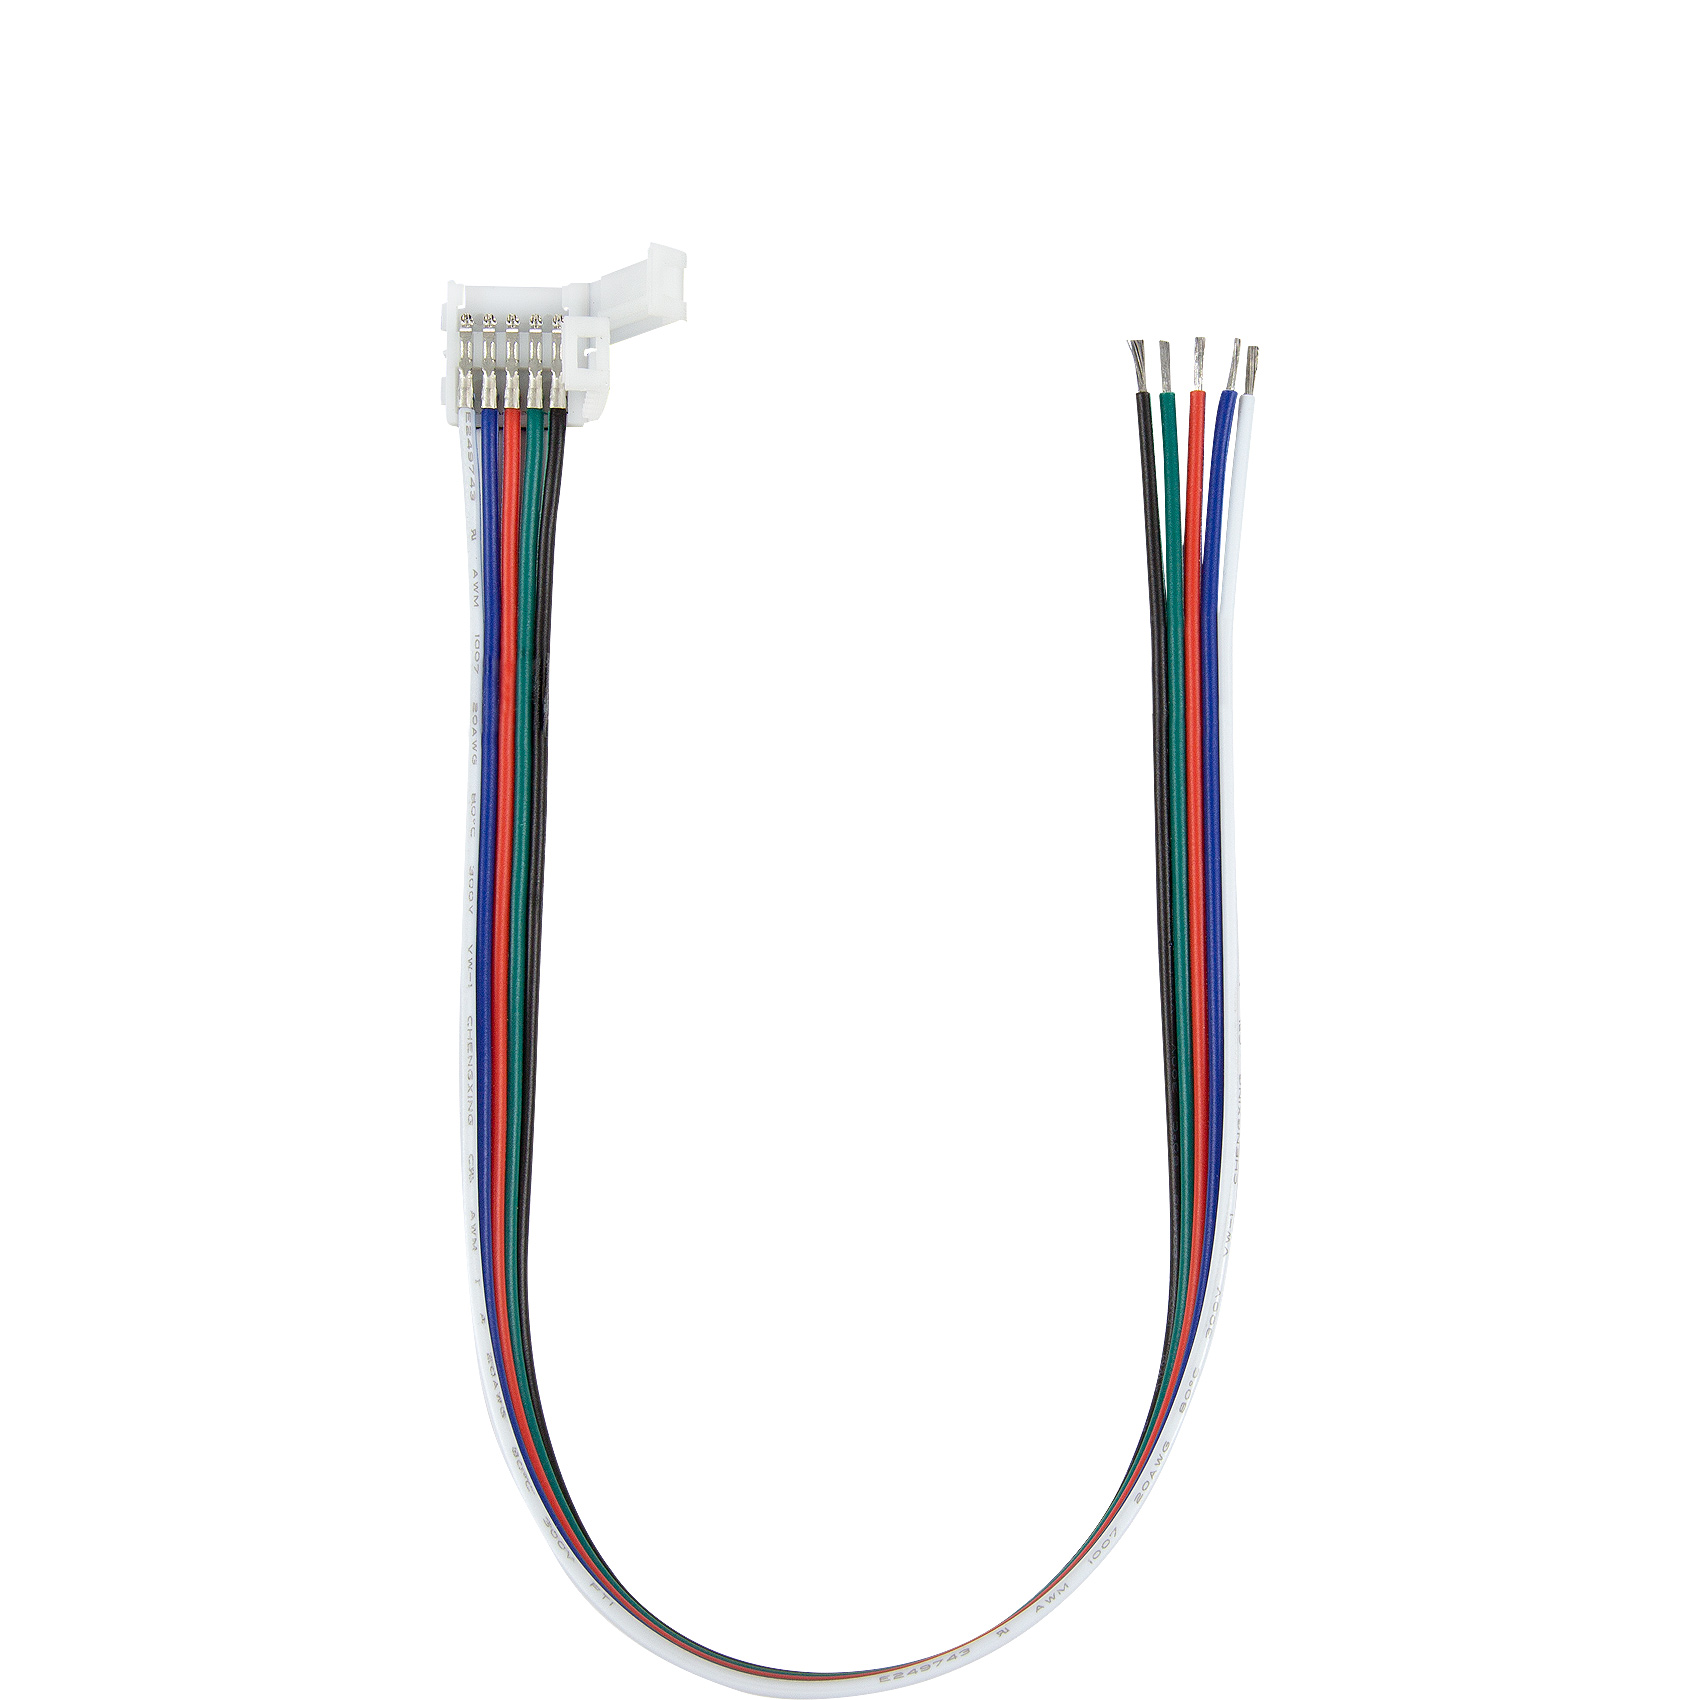 hight resolution of 5050 rgbw led strip coupler with lead or tail wires